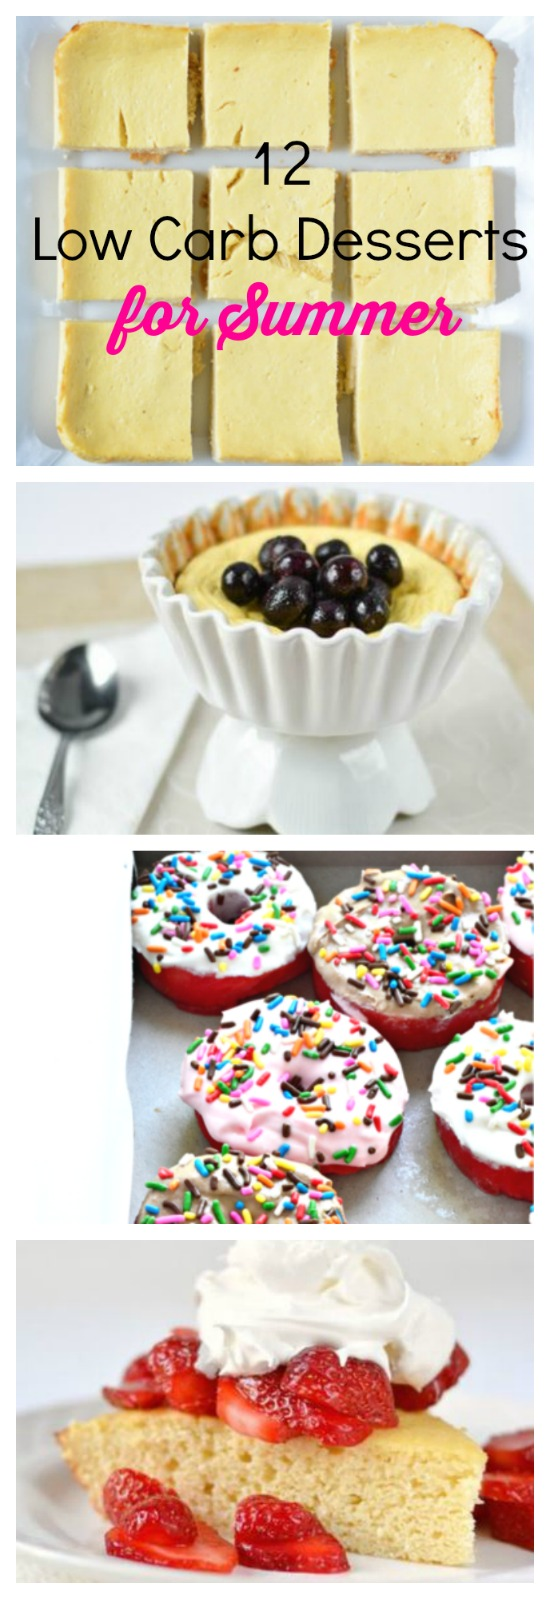 Low-Carb-Desserts